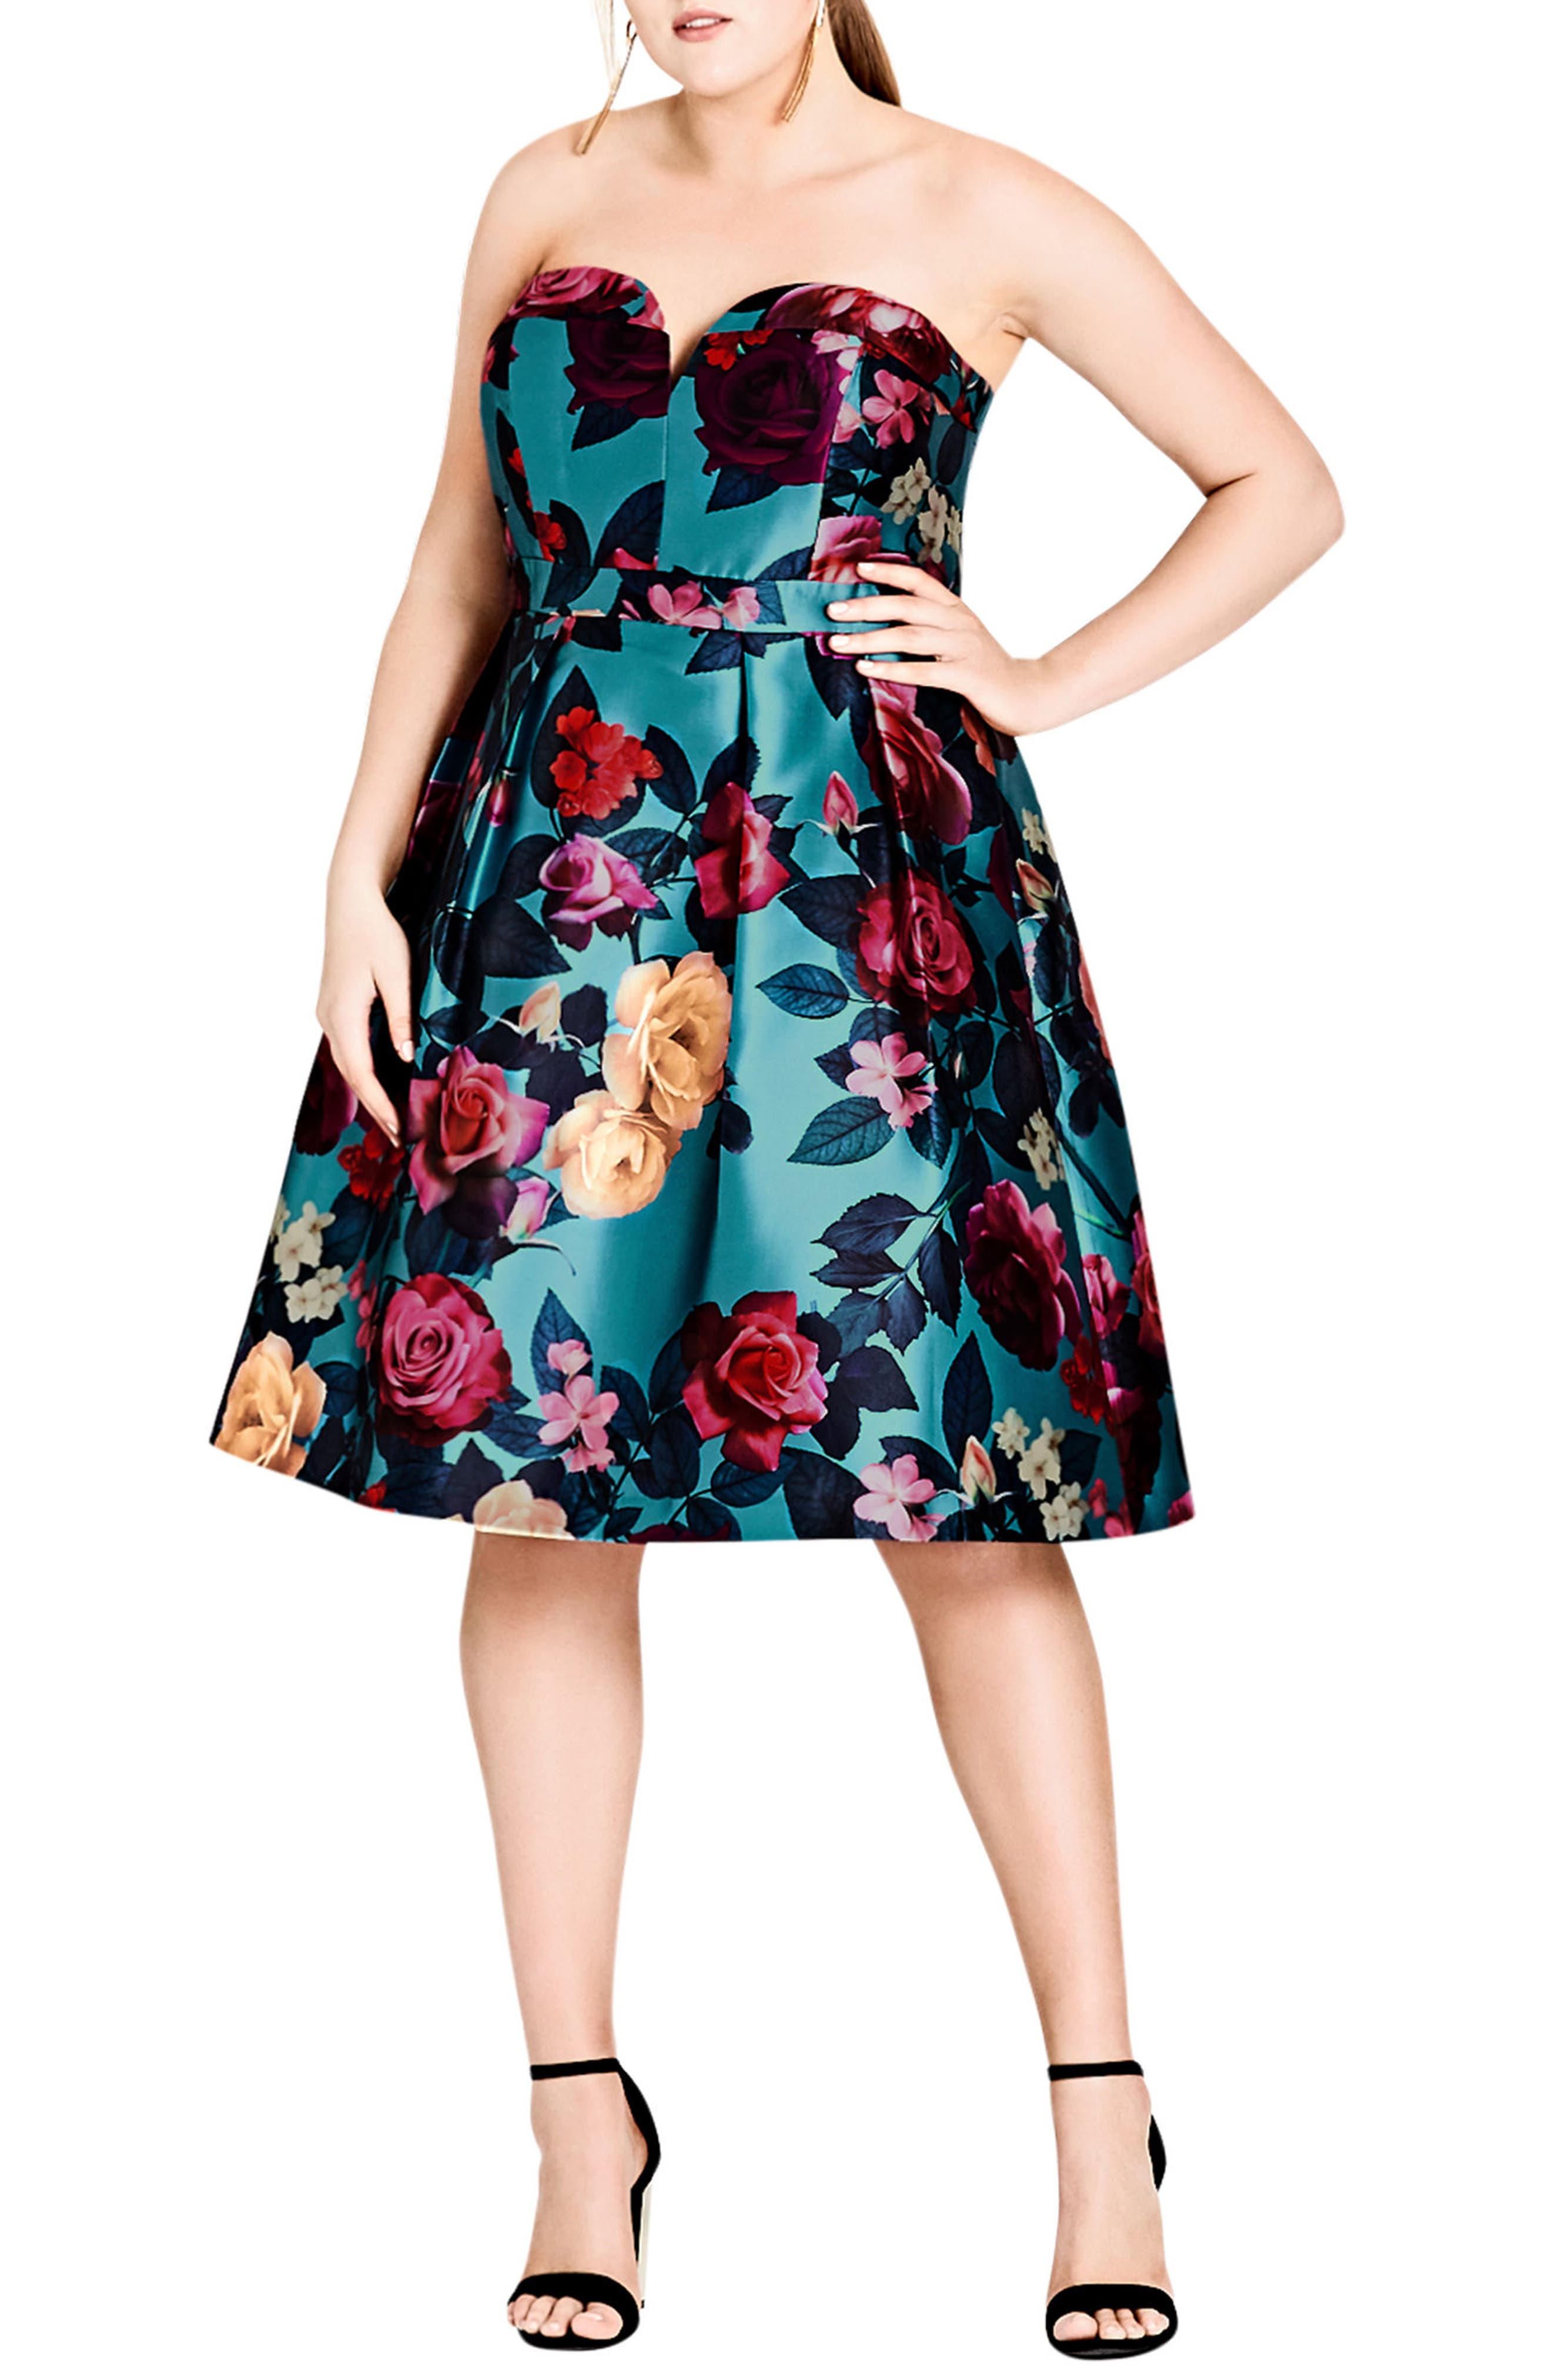 Main Image - City Chic Floral Print Fit & Flare Dress (Plus Size)